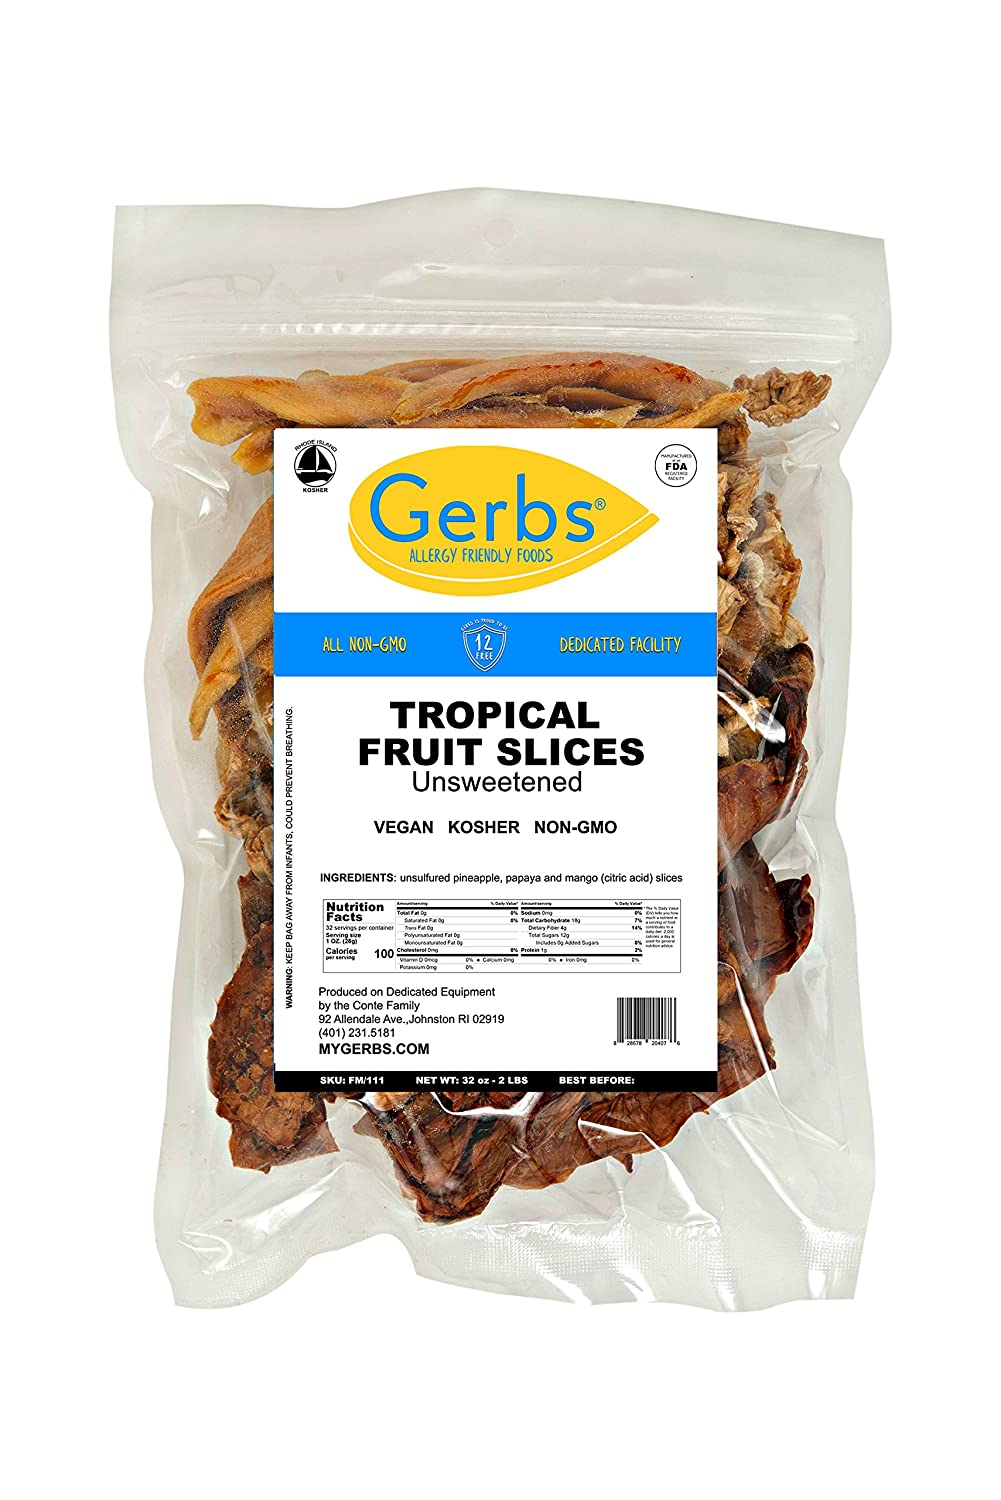 Tropical Unsweetened Fruit Mix, 2 LBS By Gerbs - Top 12 Food Allergy Free &  NON GMO Sulfur Dioxide &